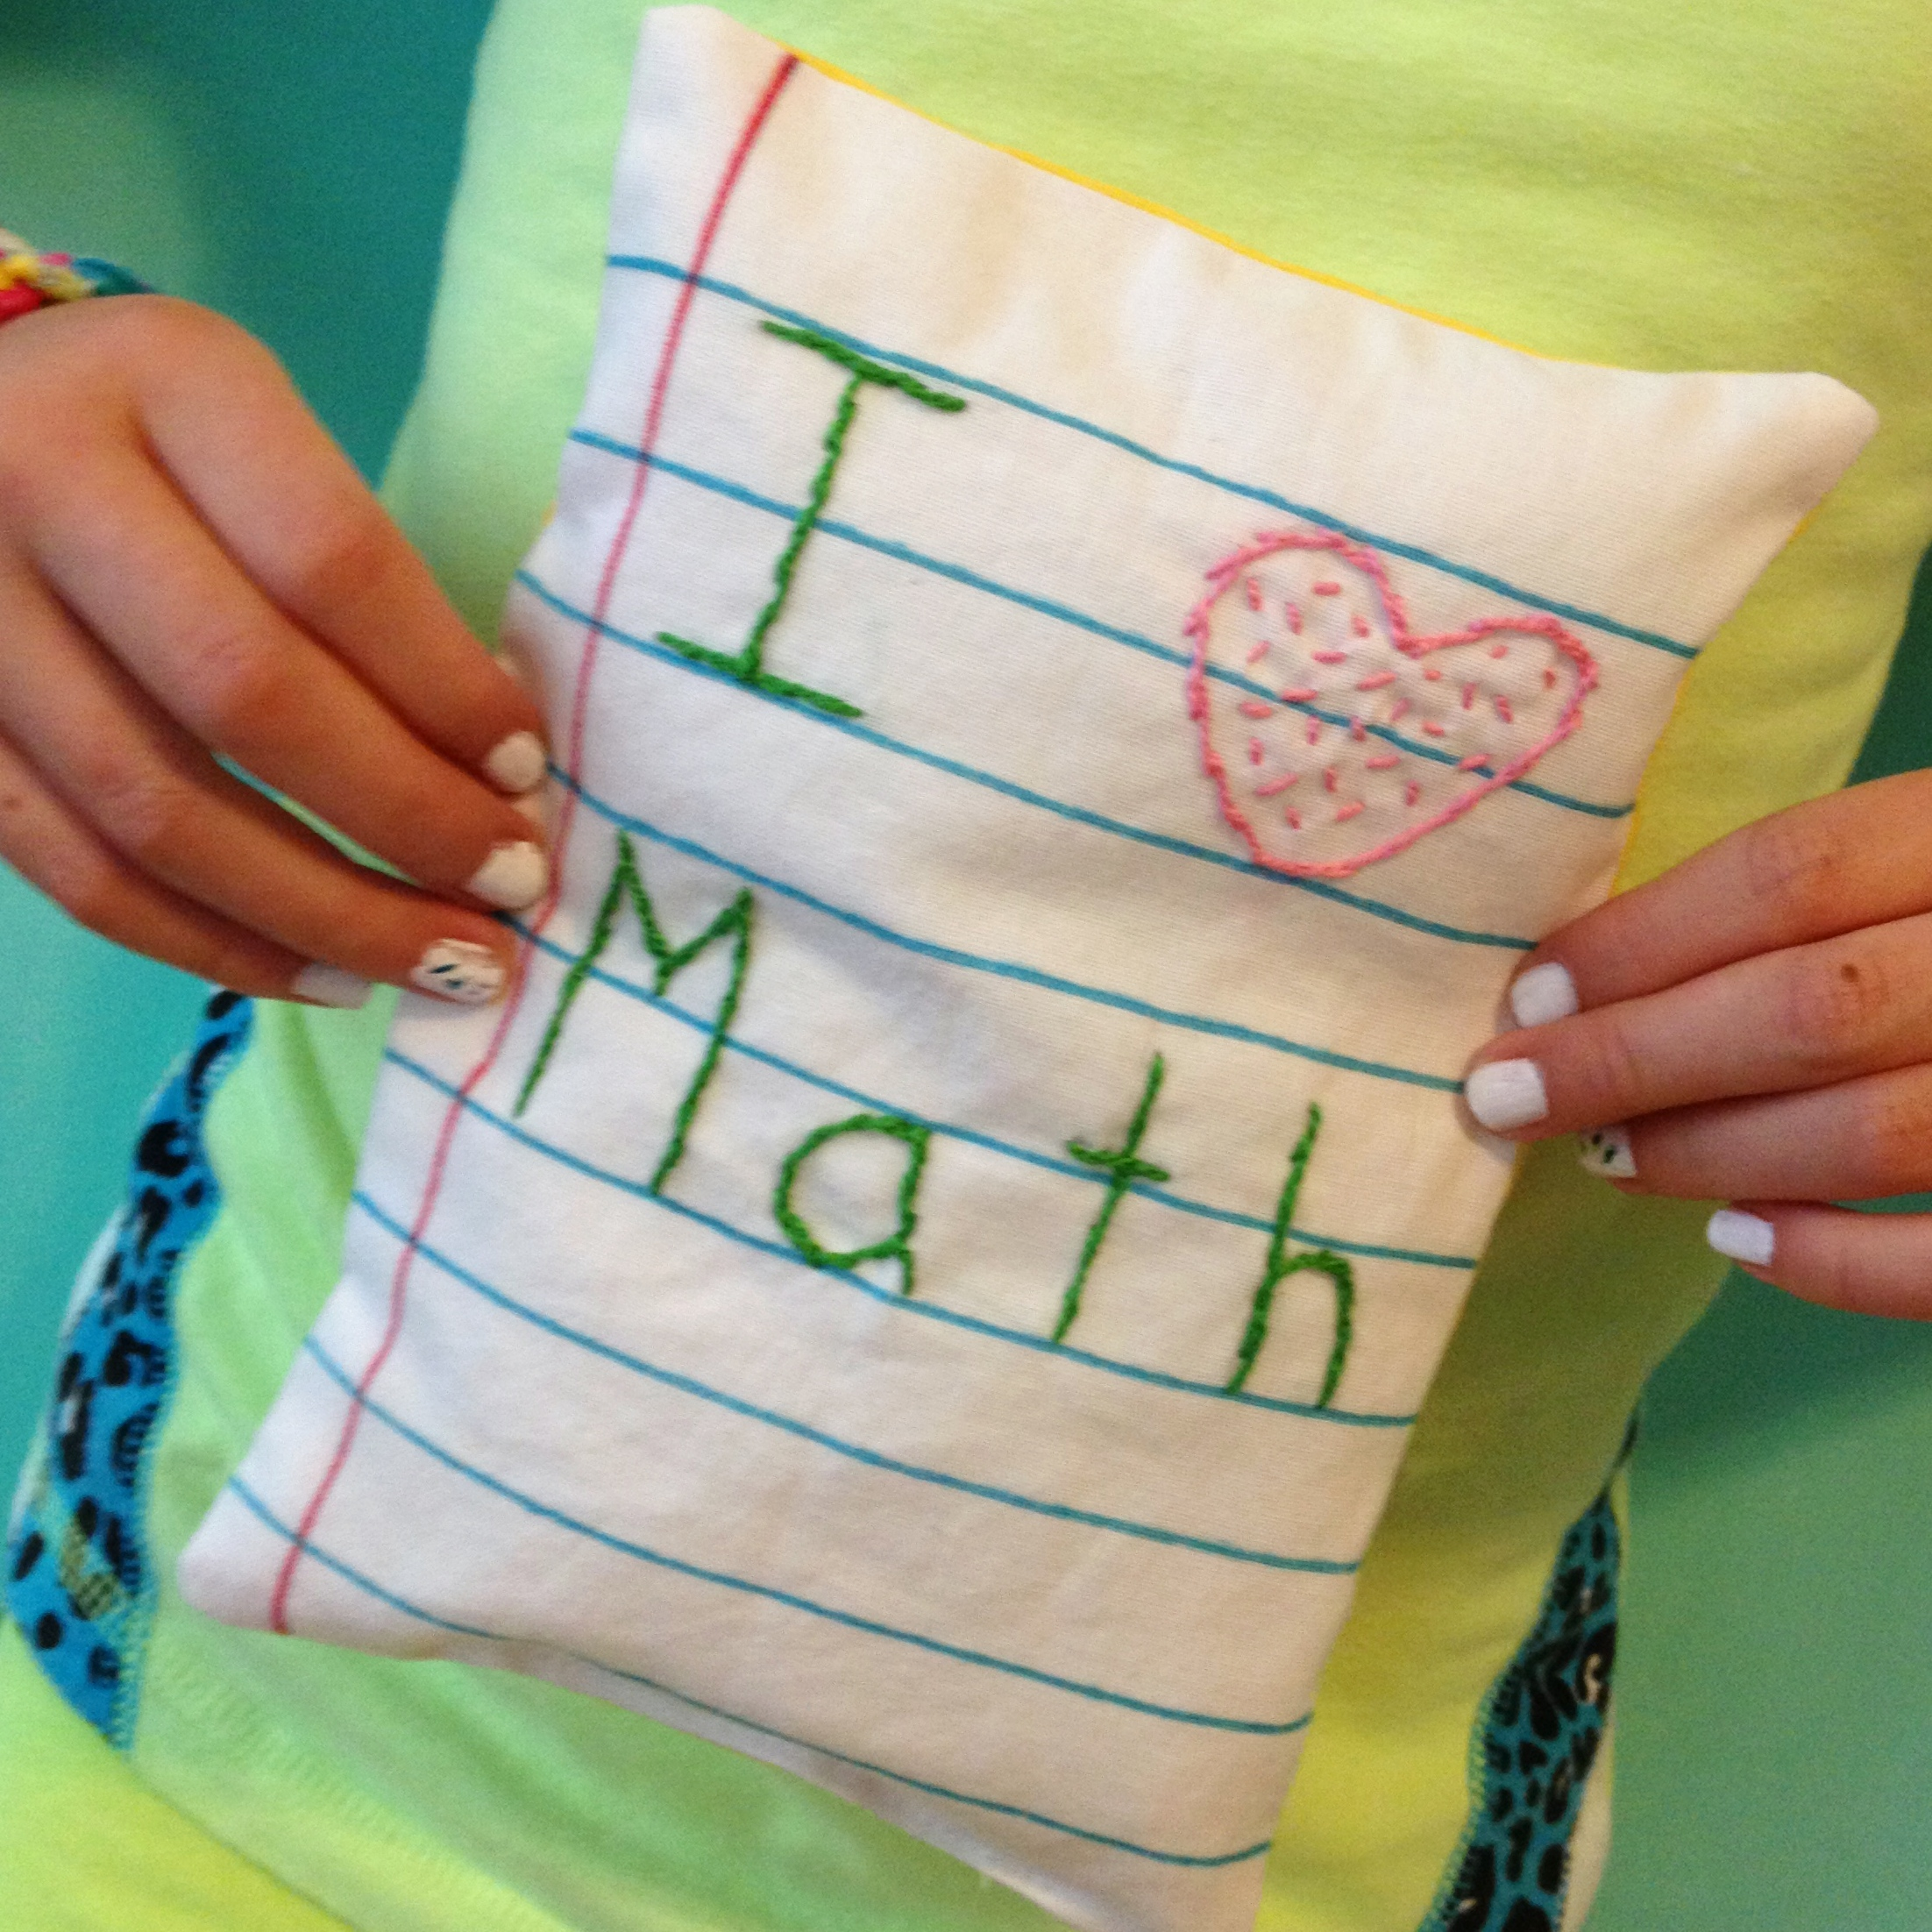 innovative art and sewing classes for chicago kids that that build math skills and celebrate creativity